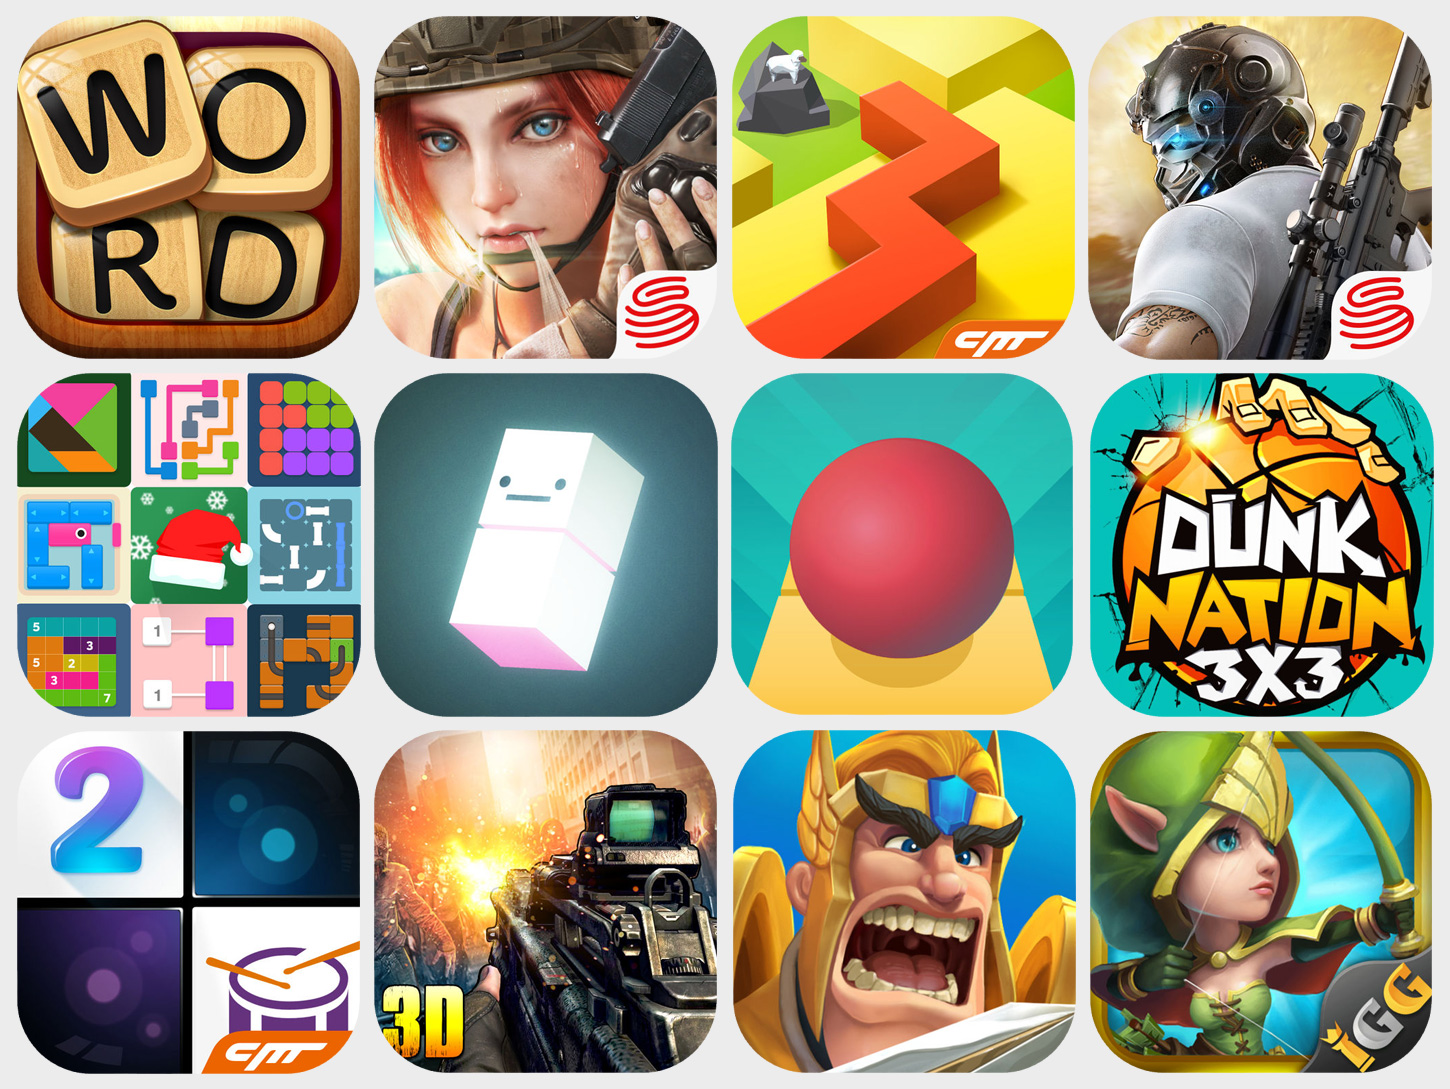 2017 CN-Made iPhone Games that Made it to the U.S. App Store Top 5 Free